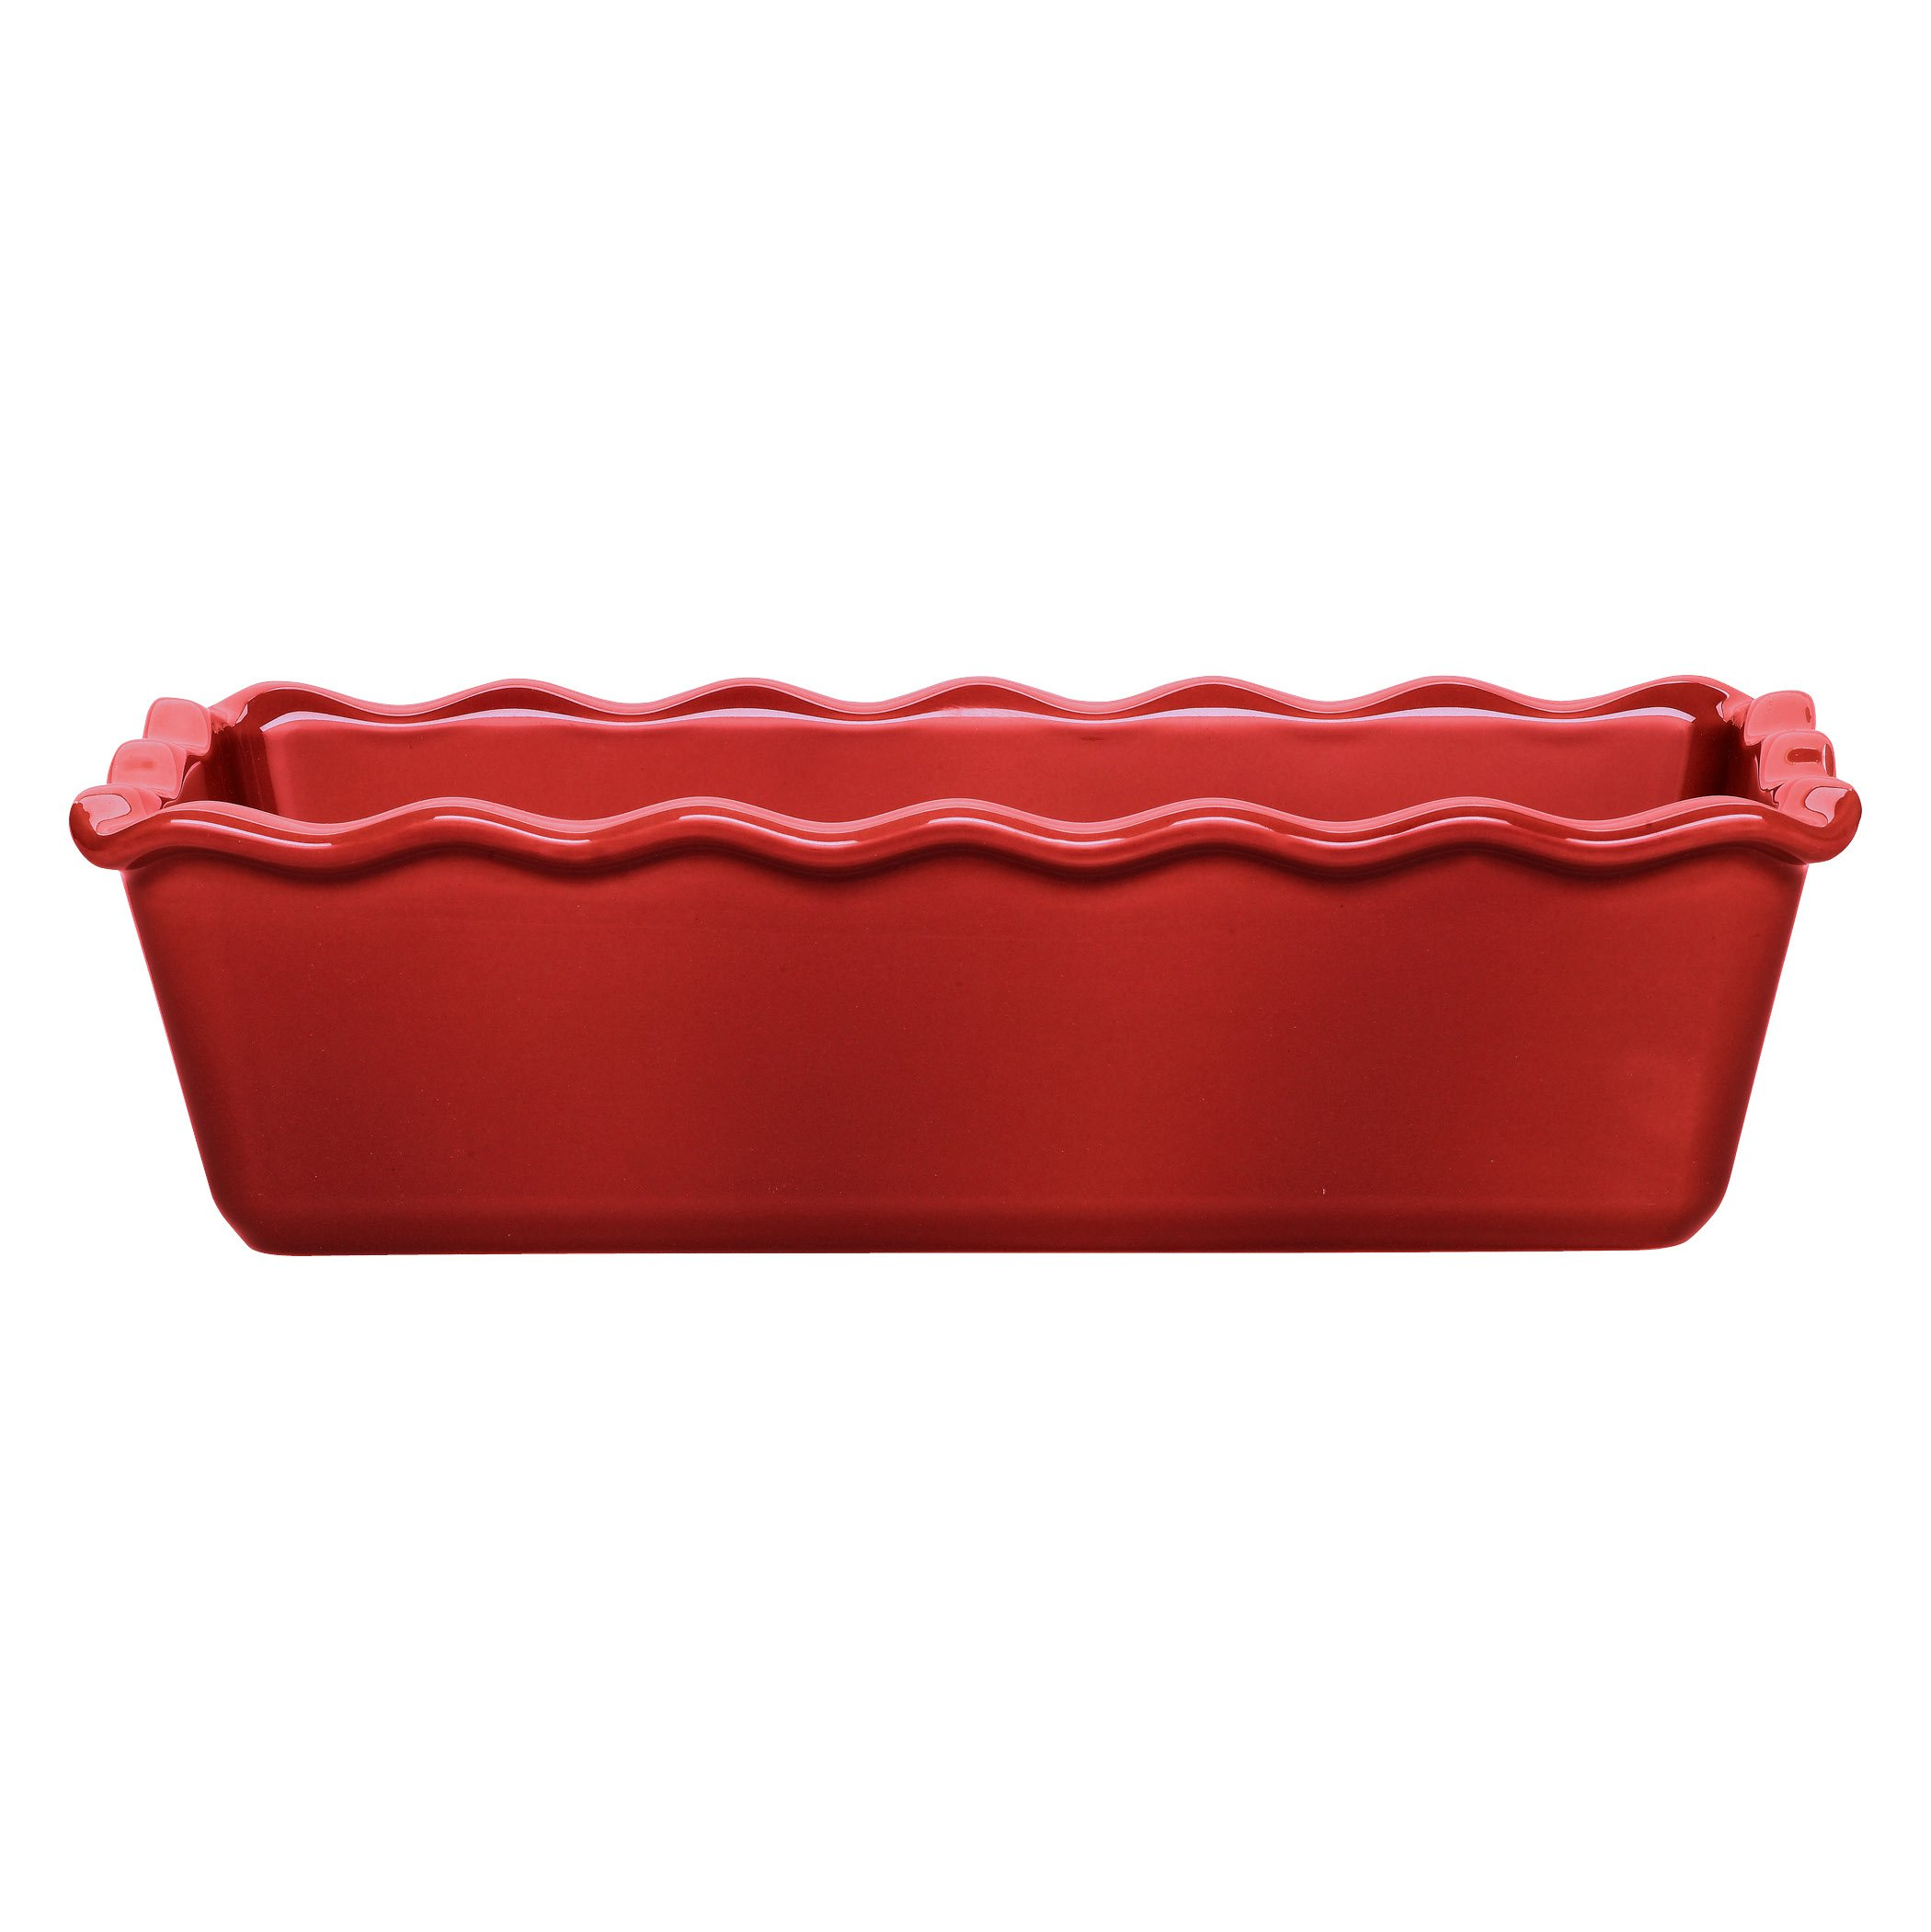 Emile Henry Made In France Ruffled Loaf Pan, 9'' by 5'' by 3'', Burgundy Red